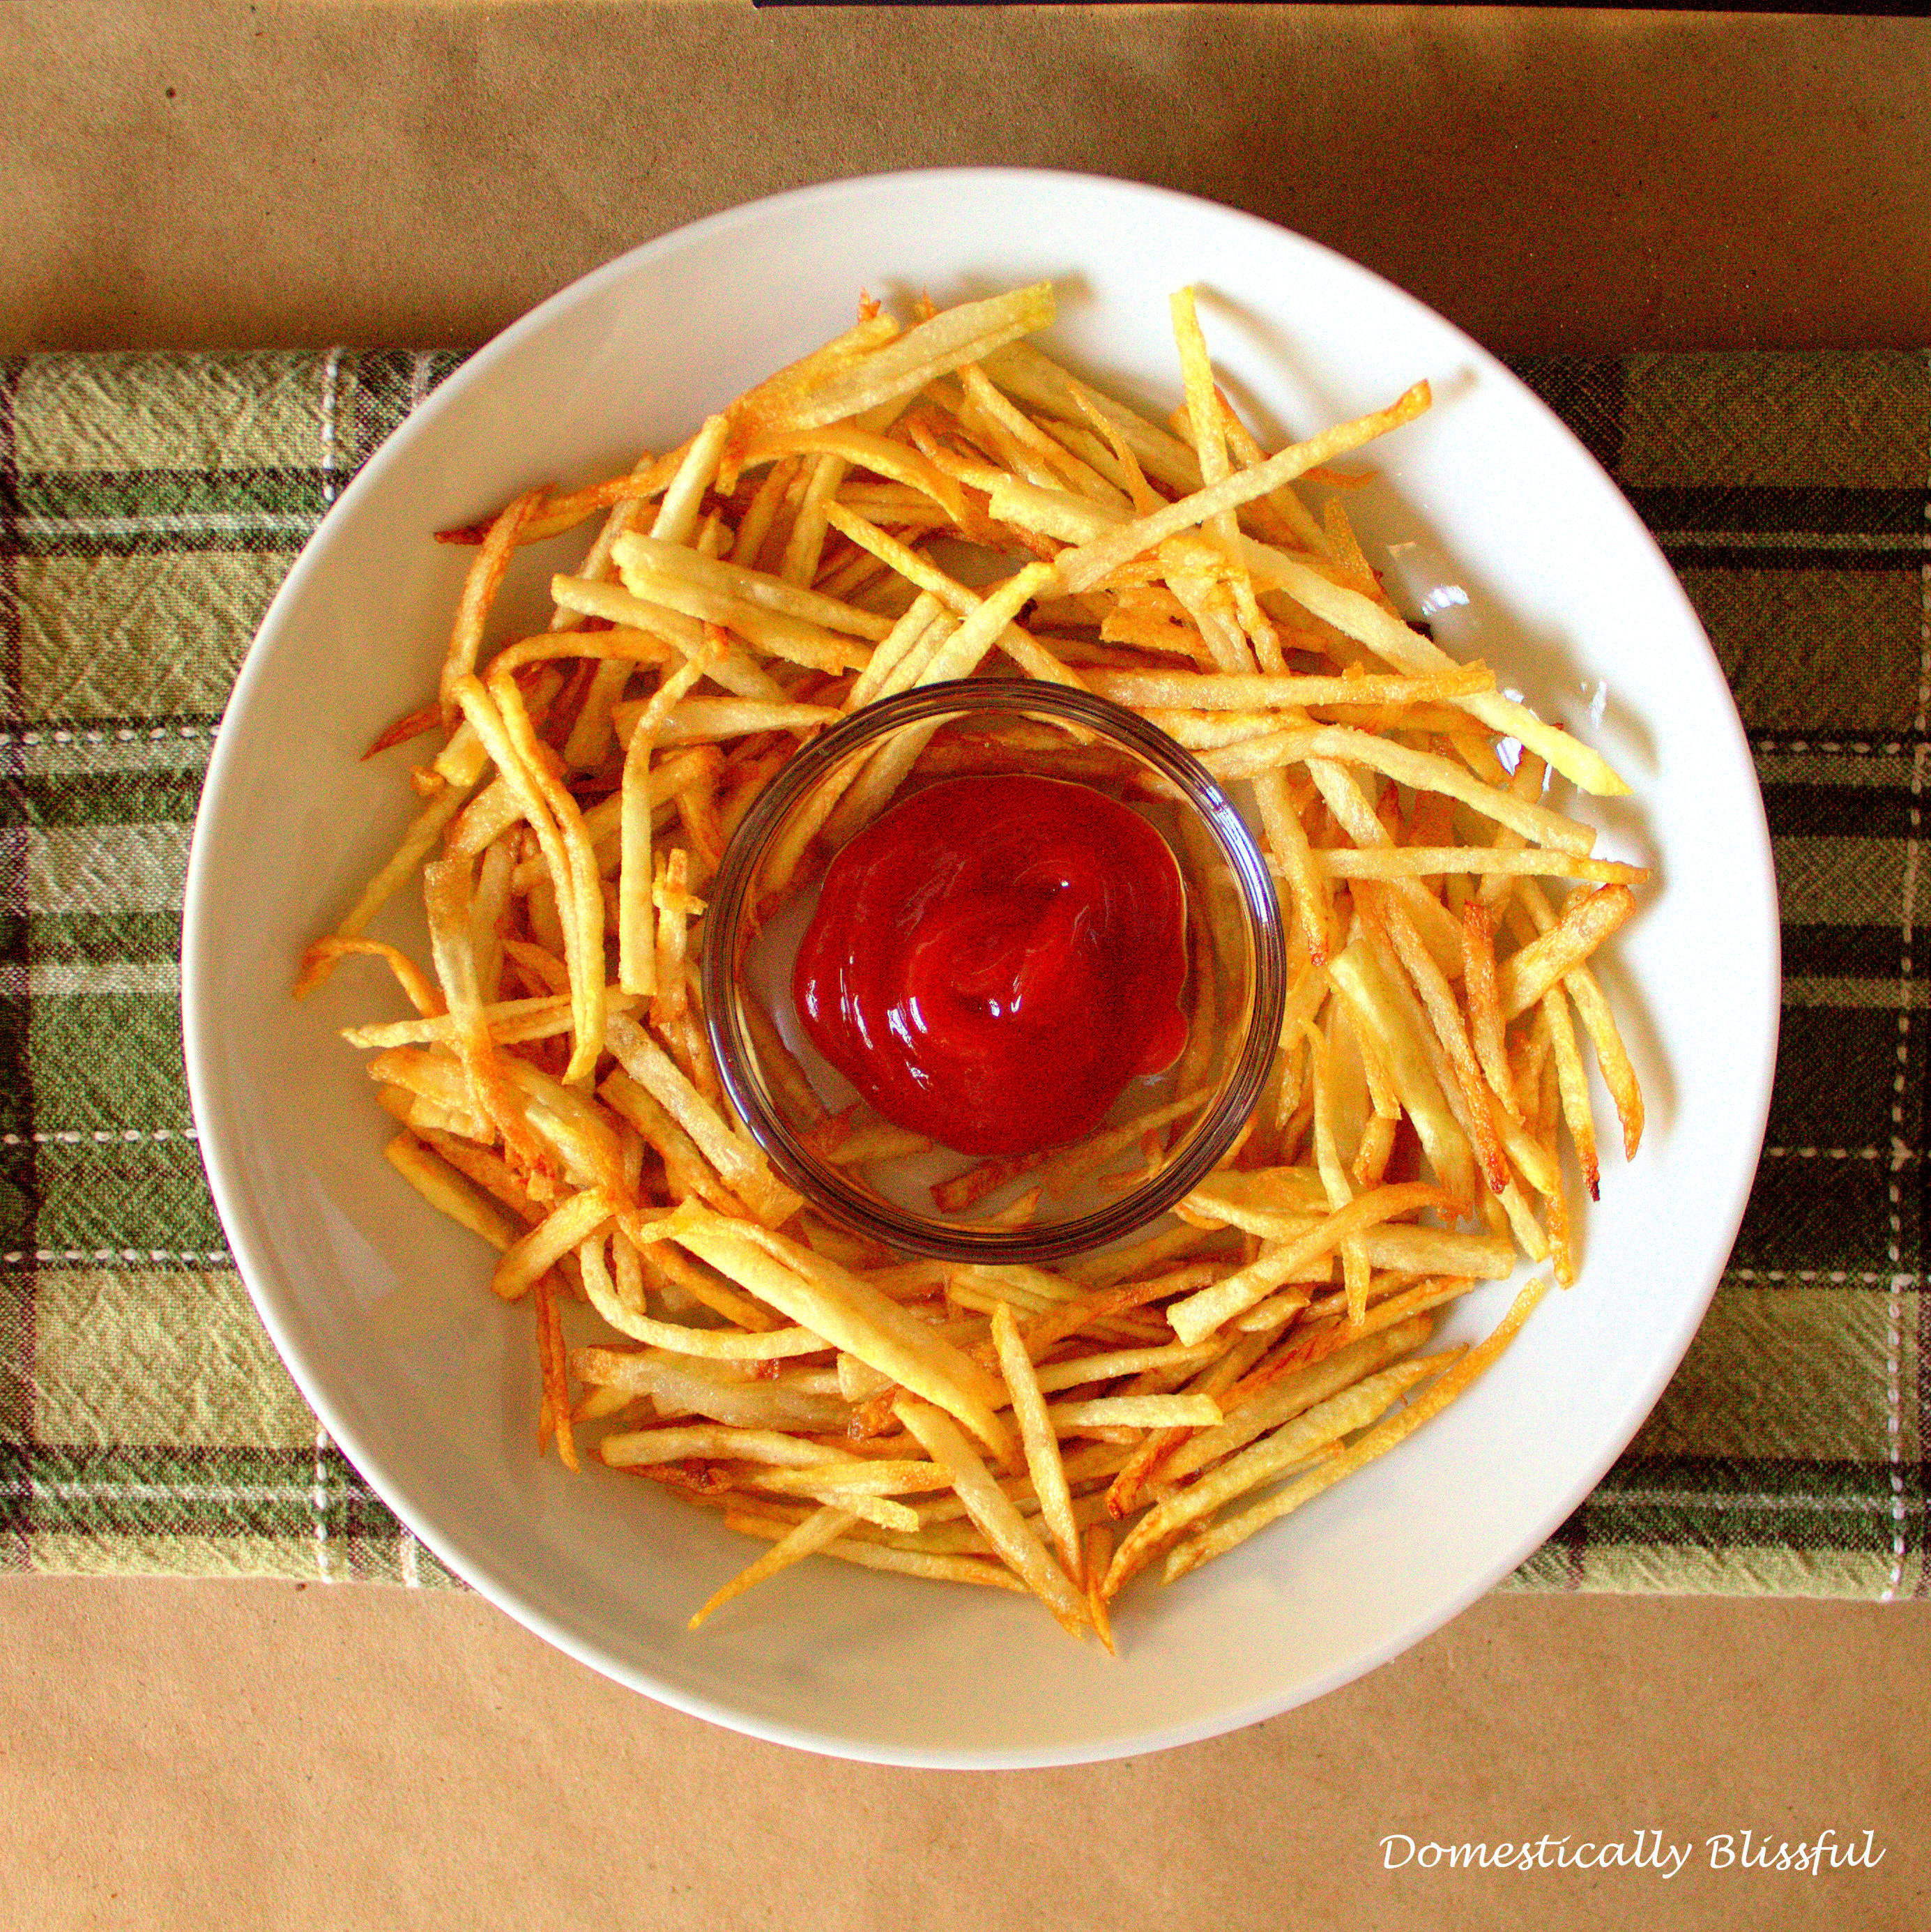 Shoe String French Fries